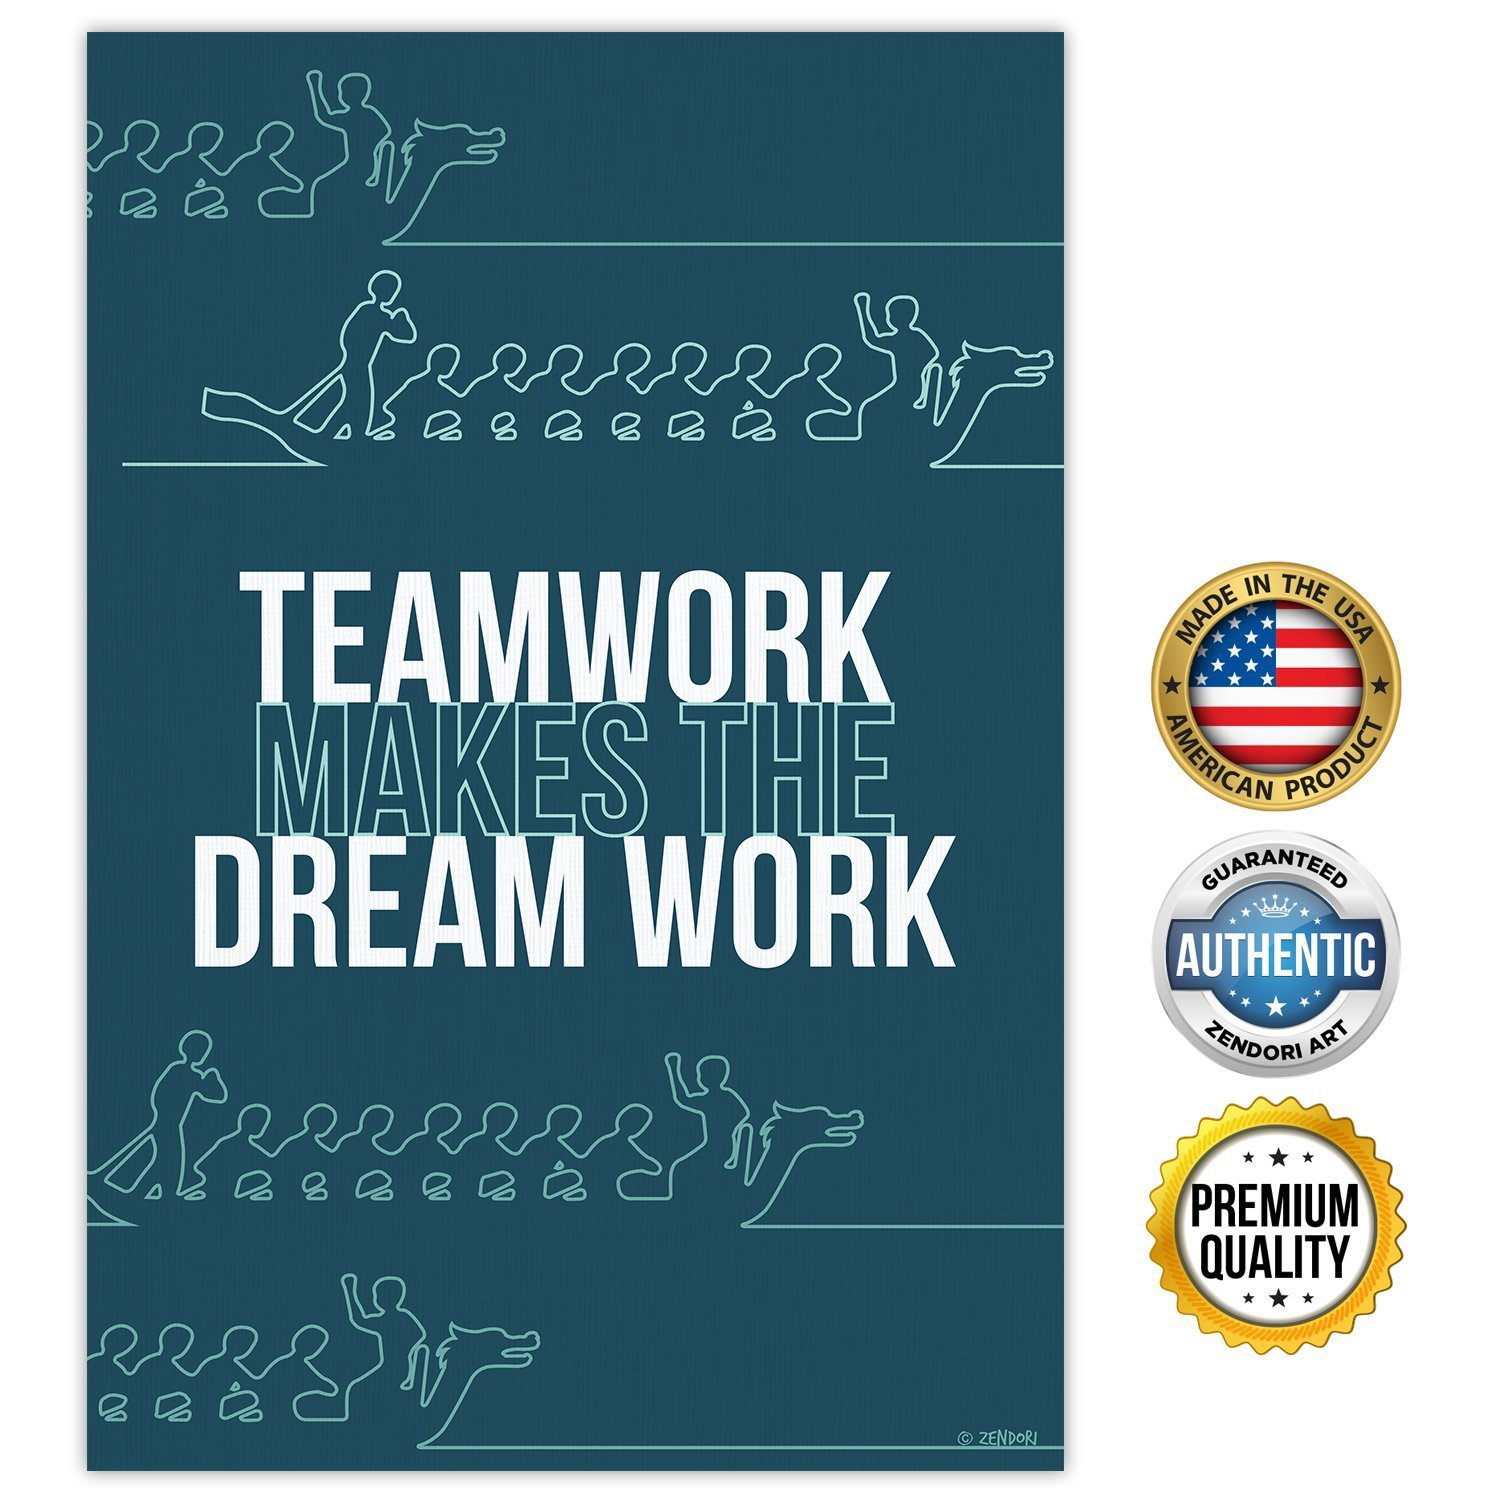 posters for office. Amazon.com: ZENDORI POSTER \u0027Teamwork Makes The Dream Work\u0027 Inspirational Poster For Office 12 X 18 (Blue): Posters \u0026 Prints